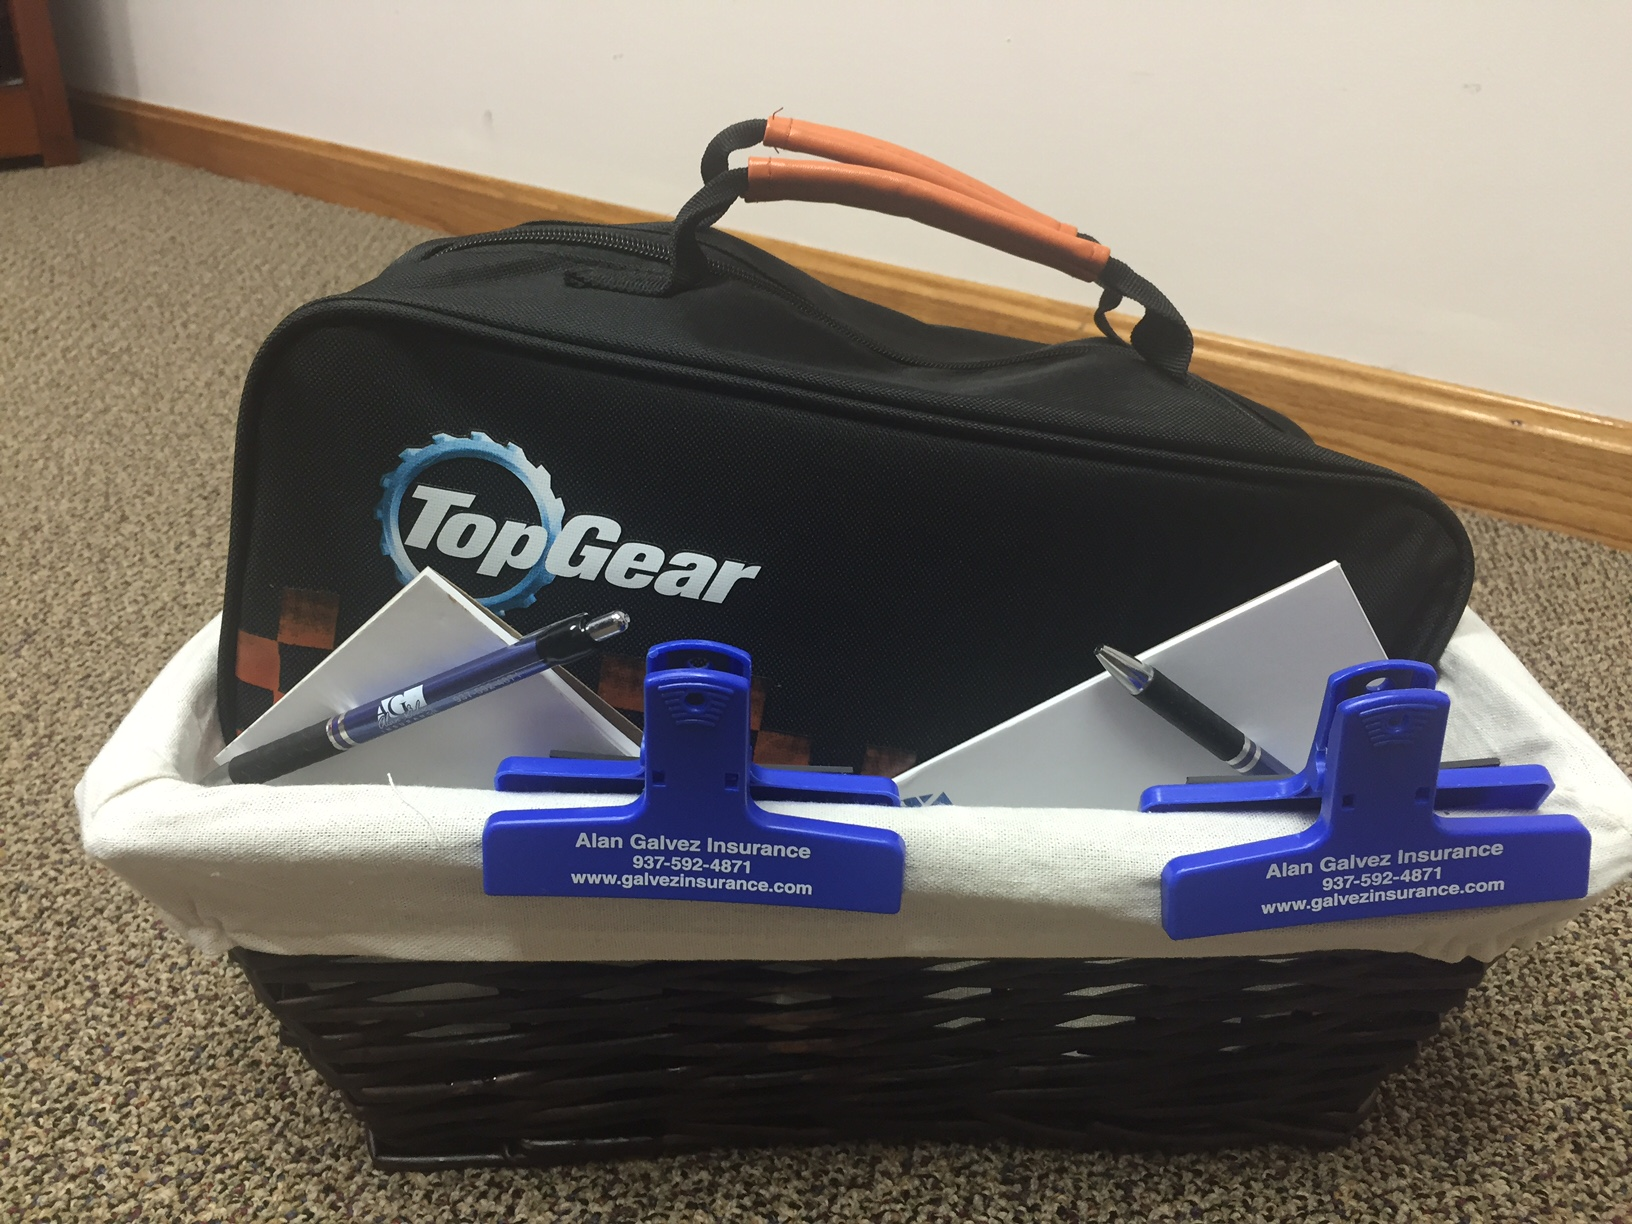 Bellefontaine Community Safety Event- Top Gear Car Roadside Assistance kit- Alan Galvez Insurance